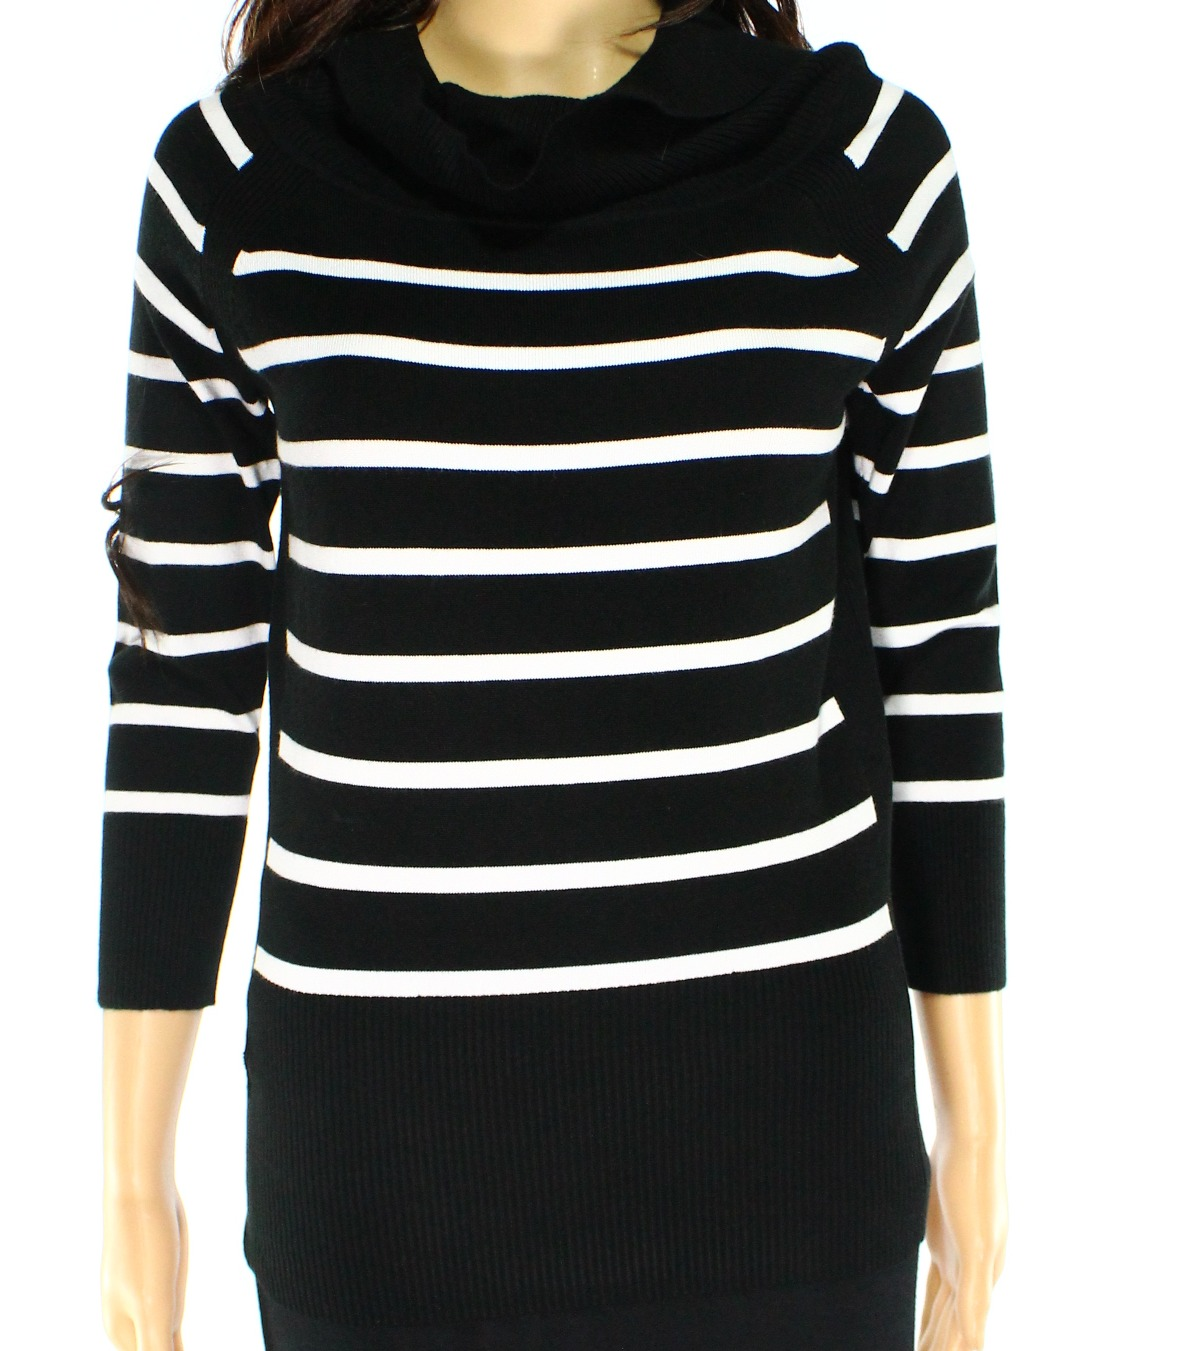 Premise Premise New Black White Striped Womens Medium M Cowl Neck